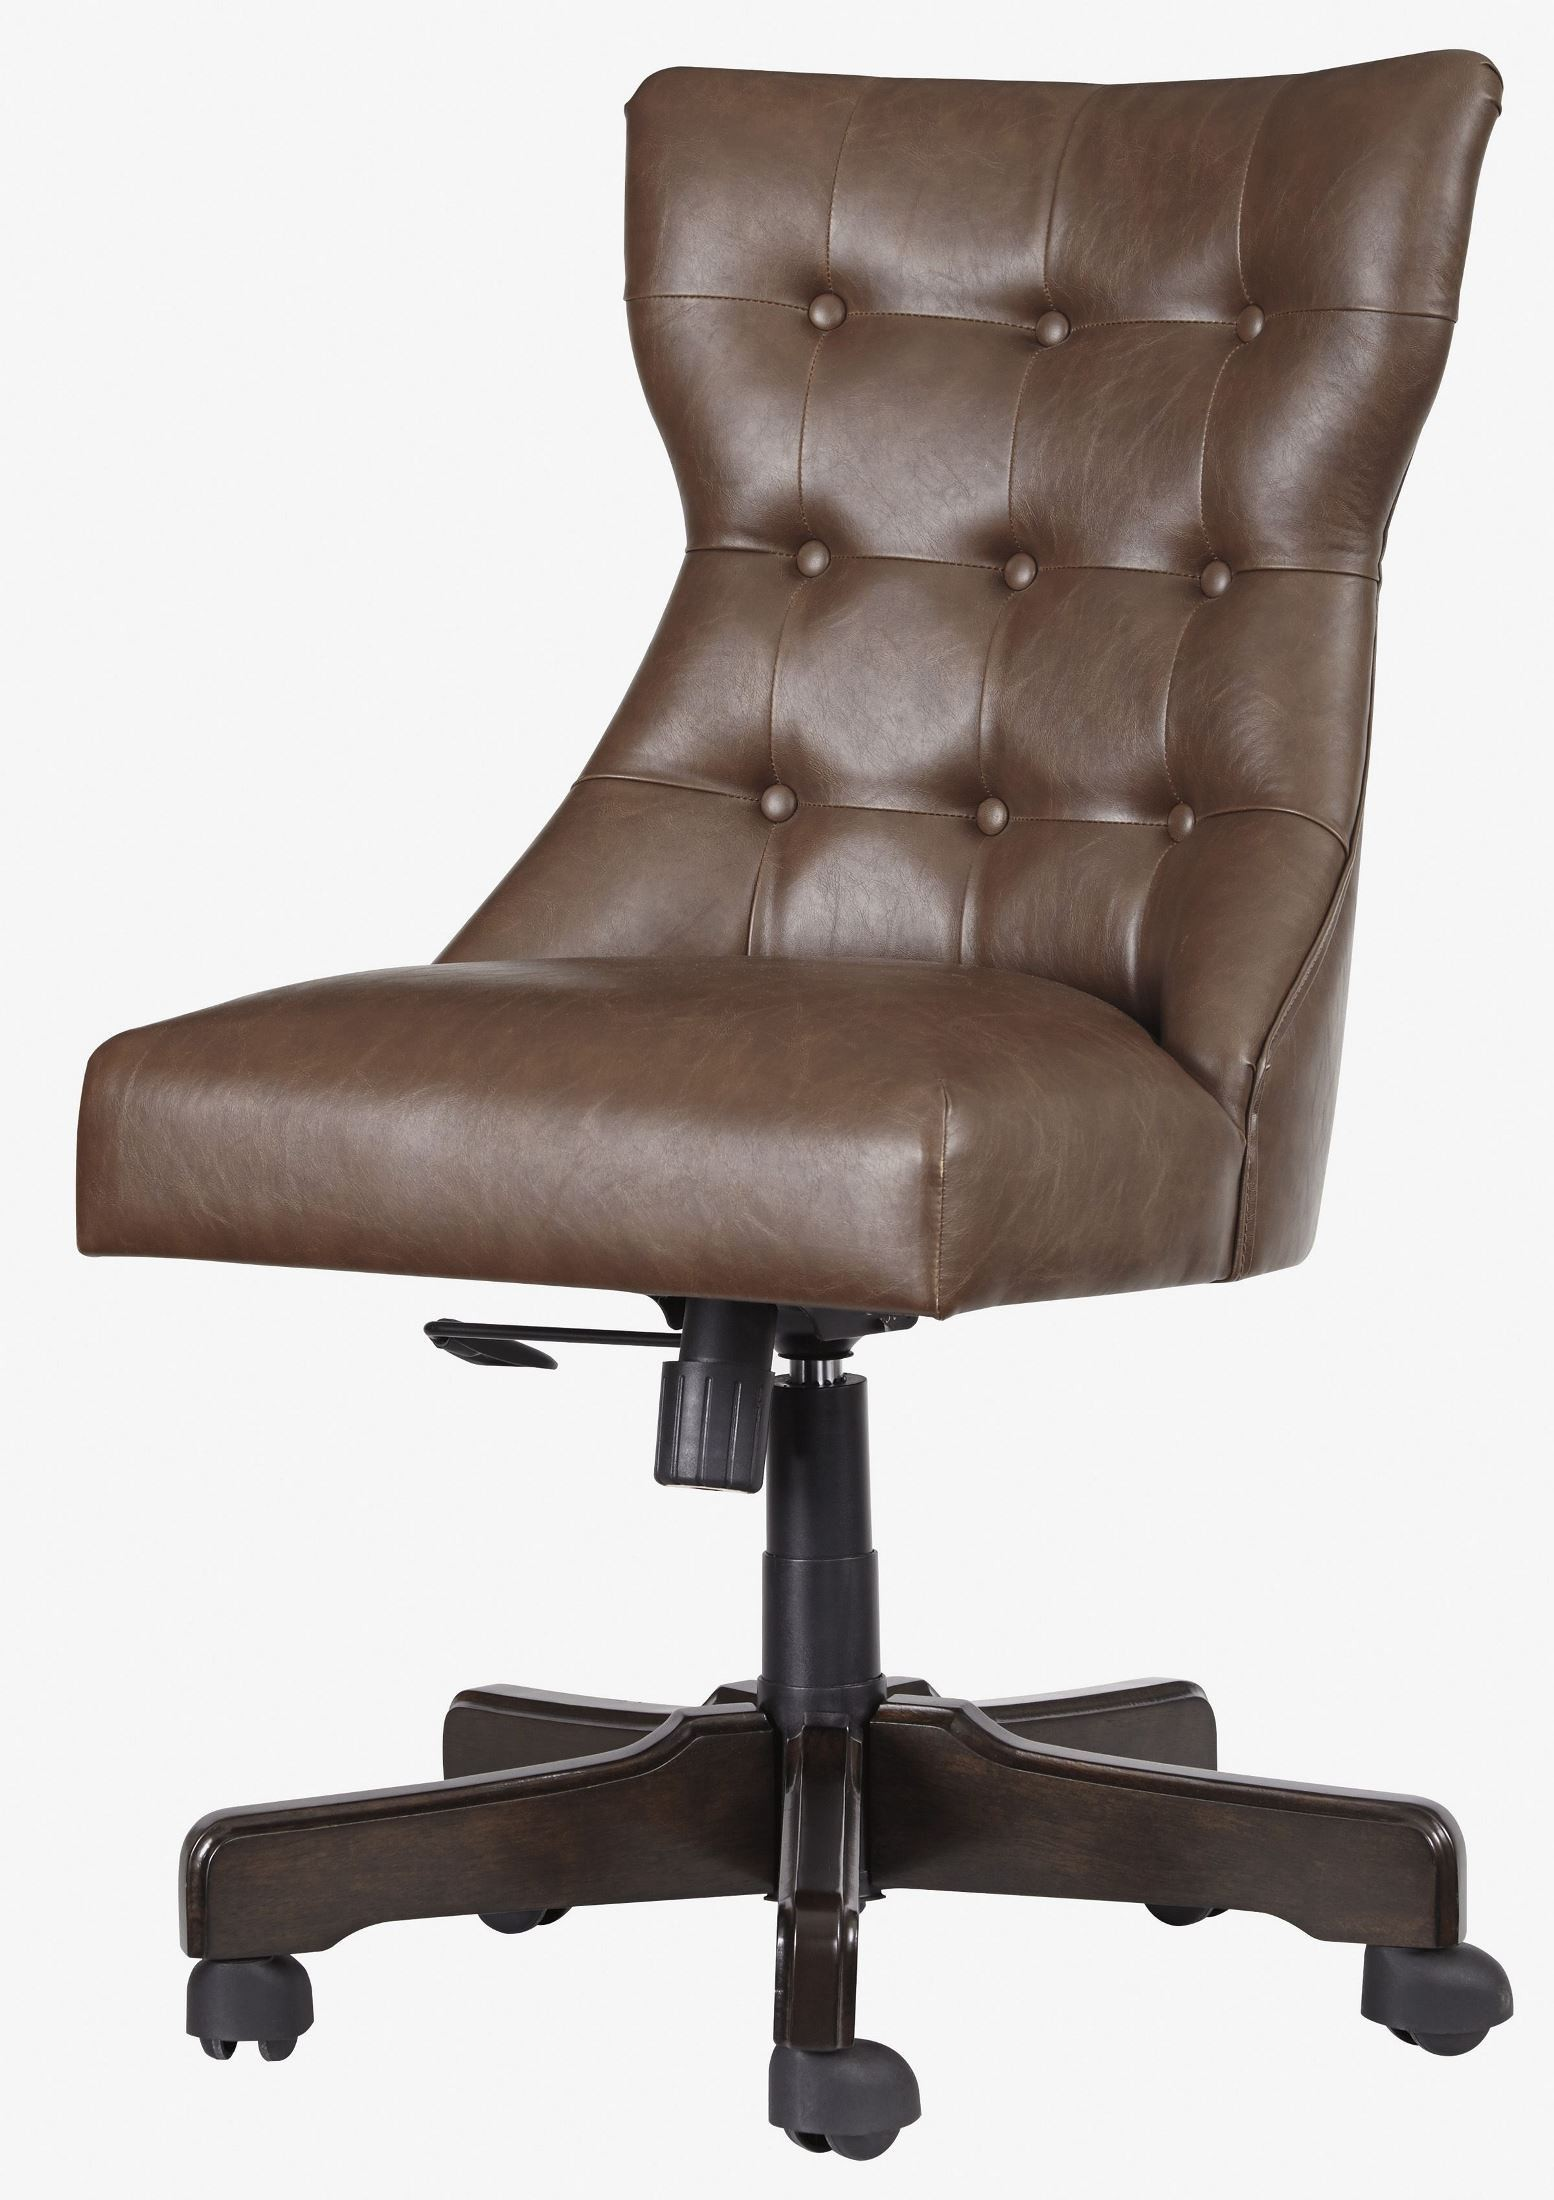 Home Office Desk Chair Brown Home Office Swivel Desk Chair From Ashley Coleman